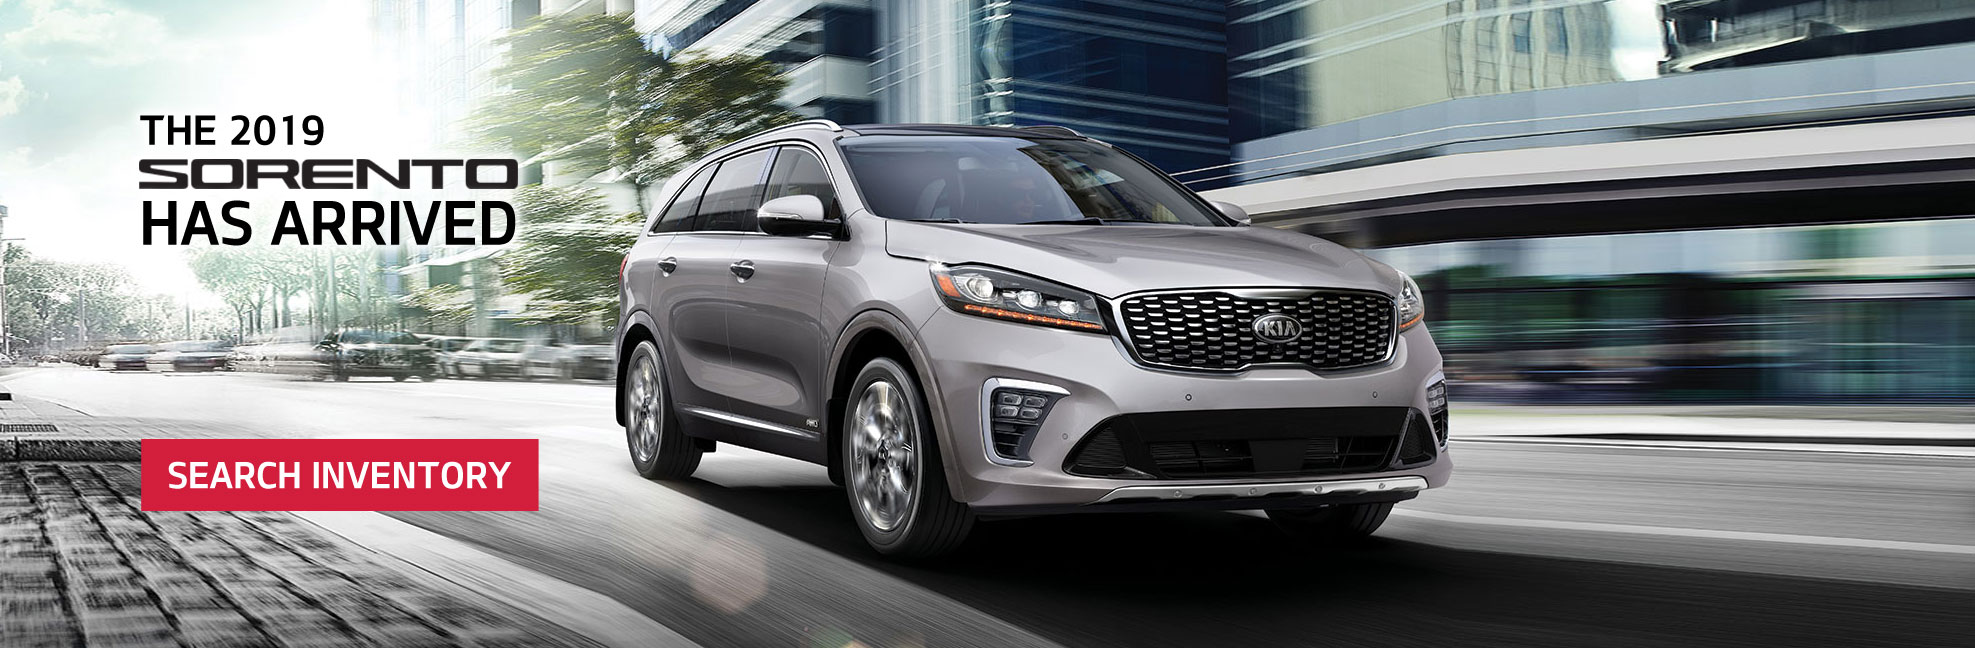 World Car Kia >> World Cars Kia Sault Ste Marie Ontario Kia Dealer Sales